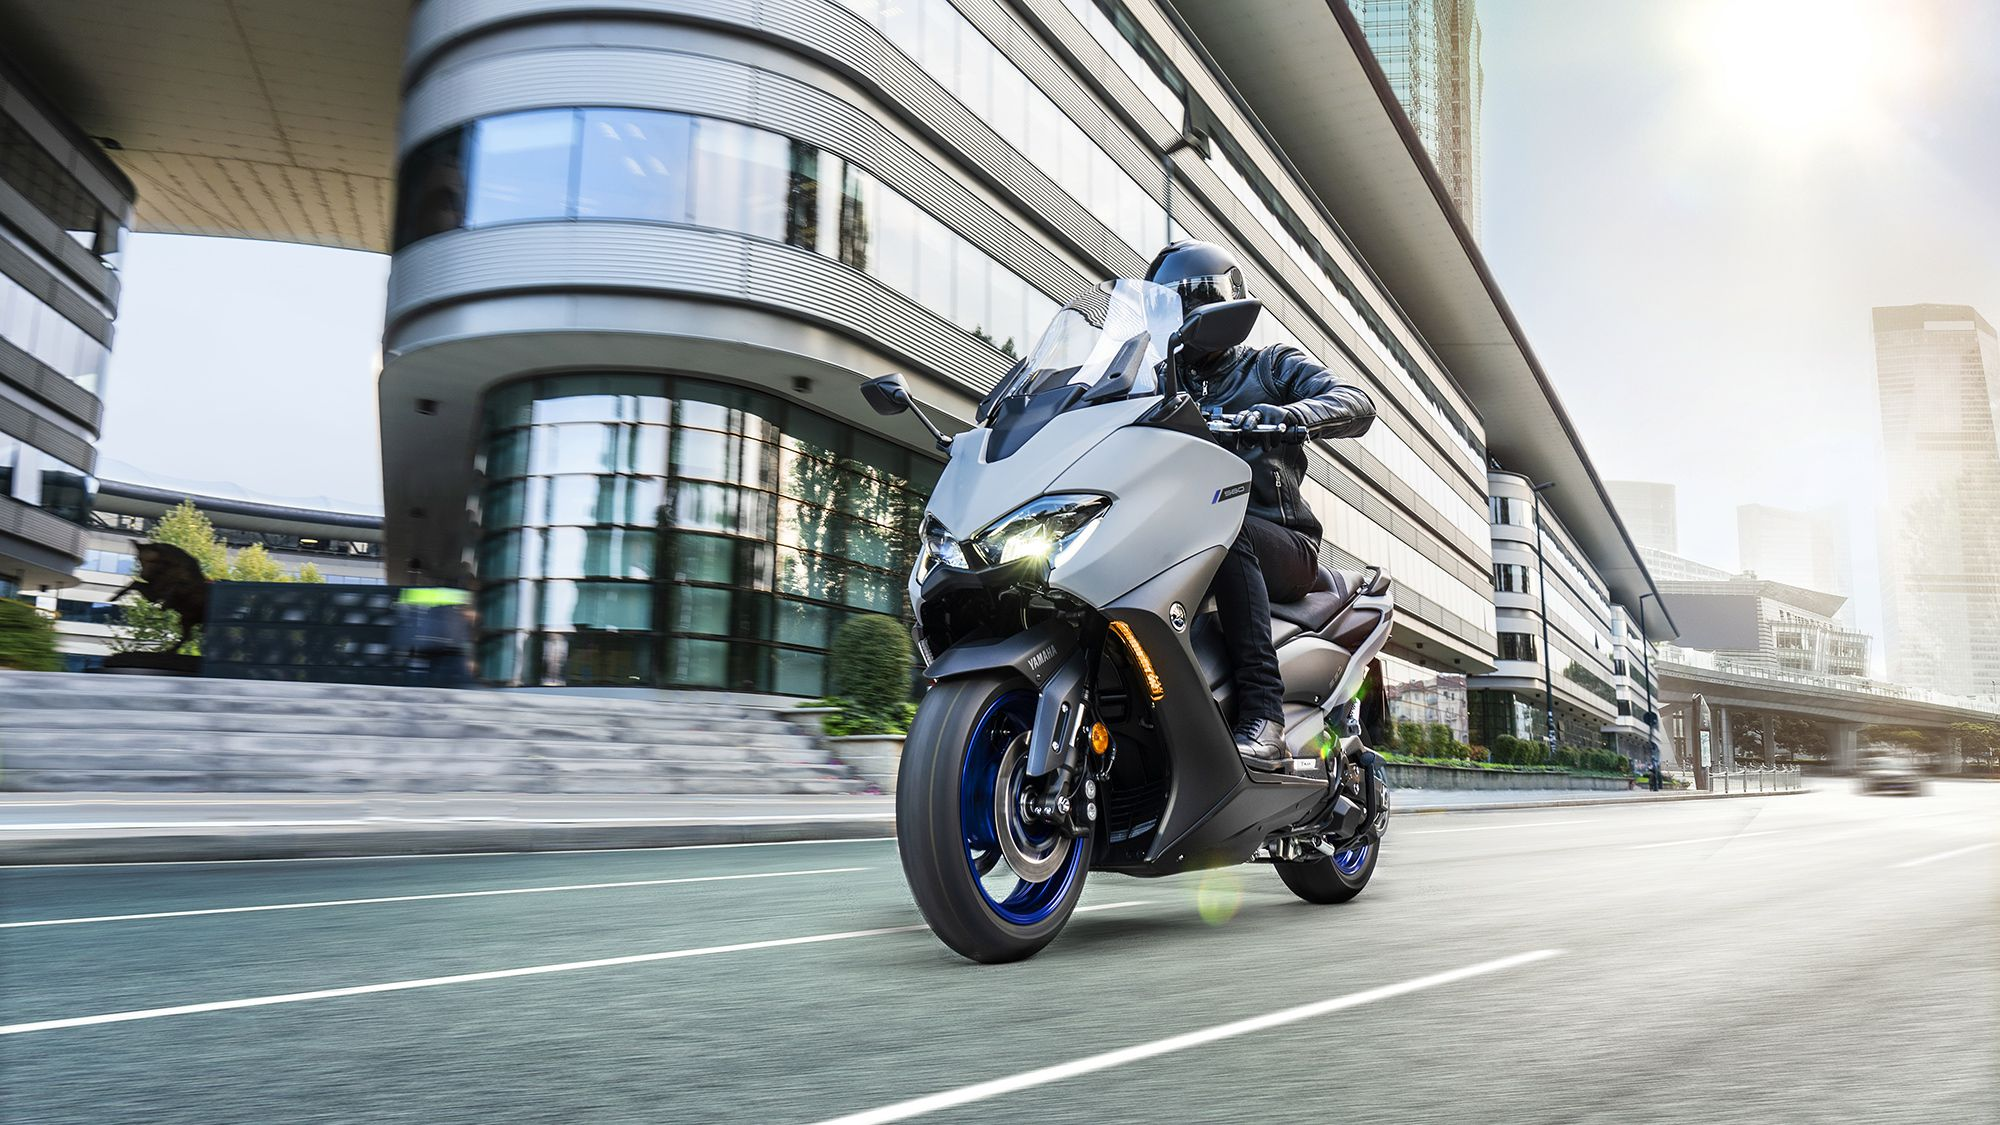 Revised bodywork gives the TMAX 560 a sportier look.